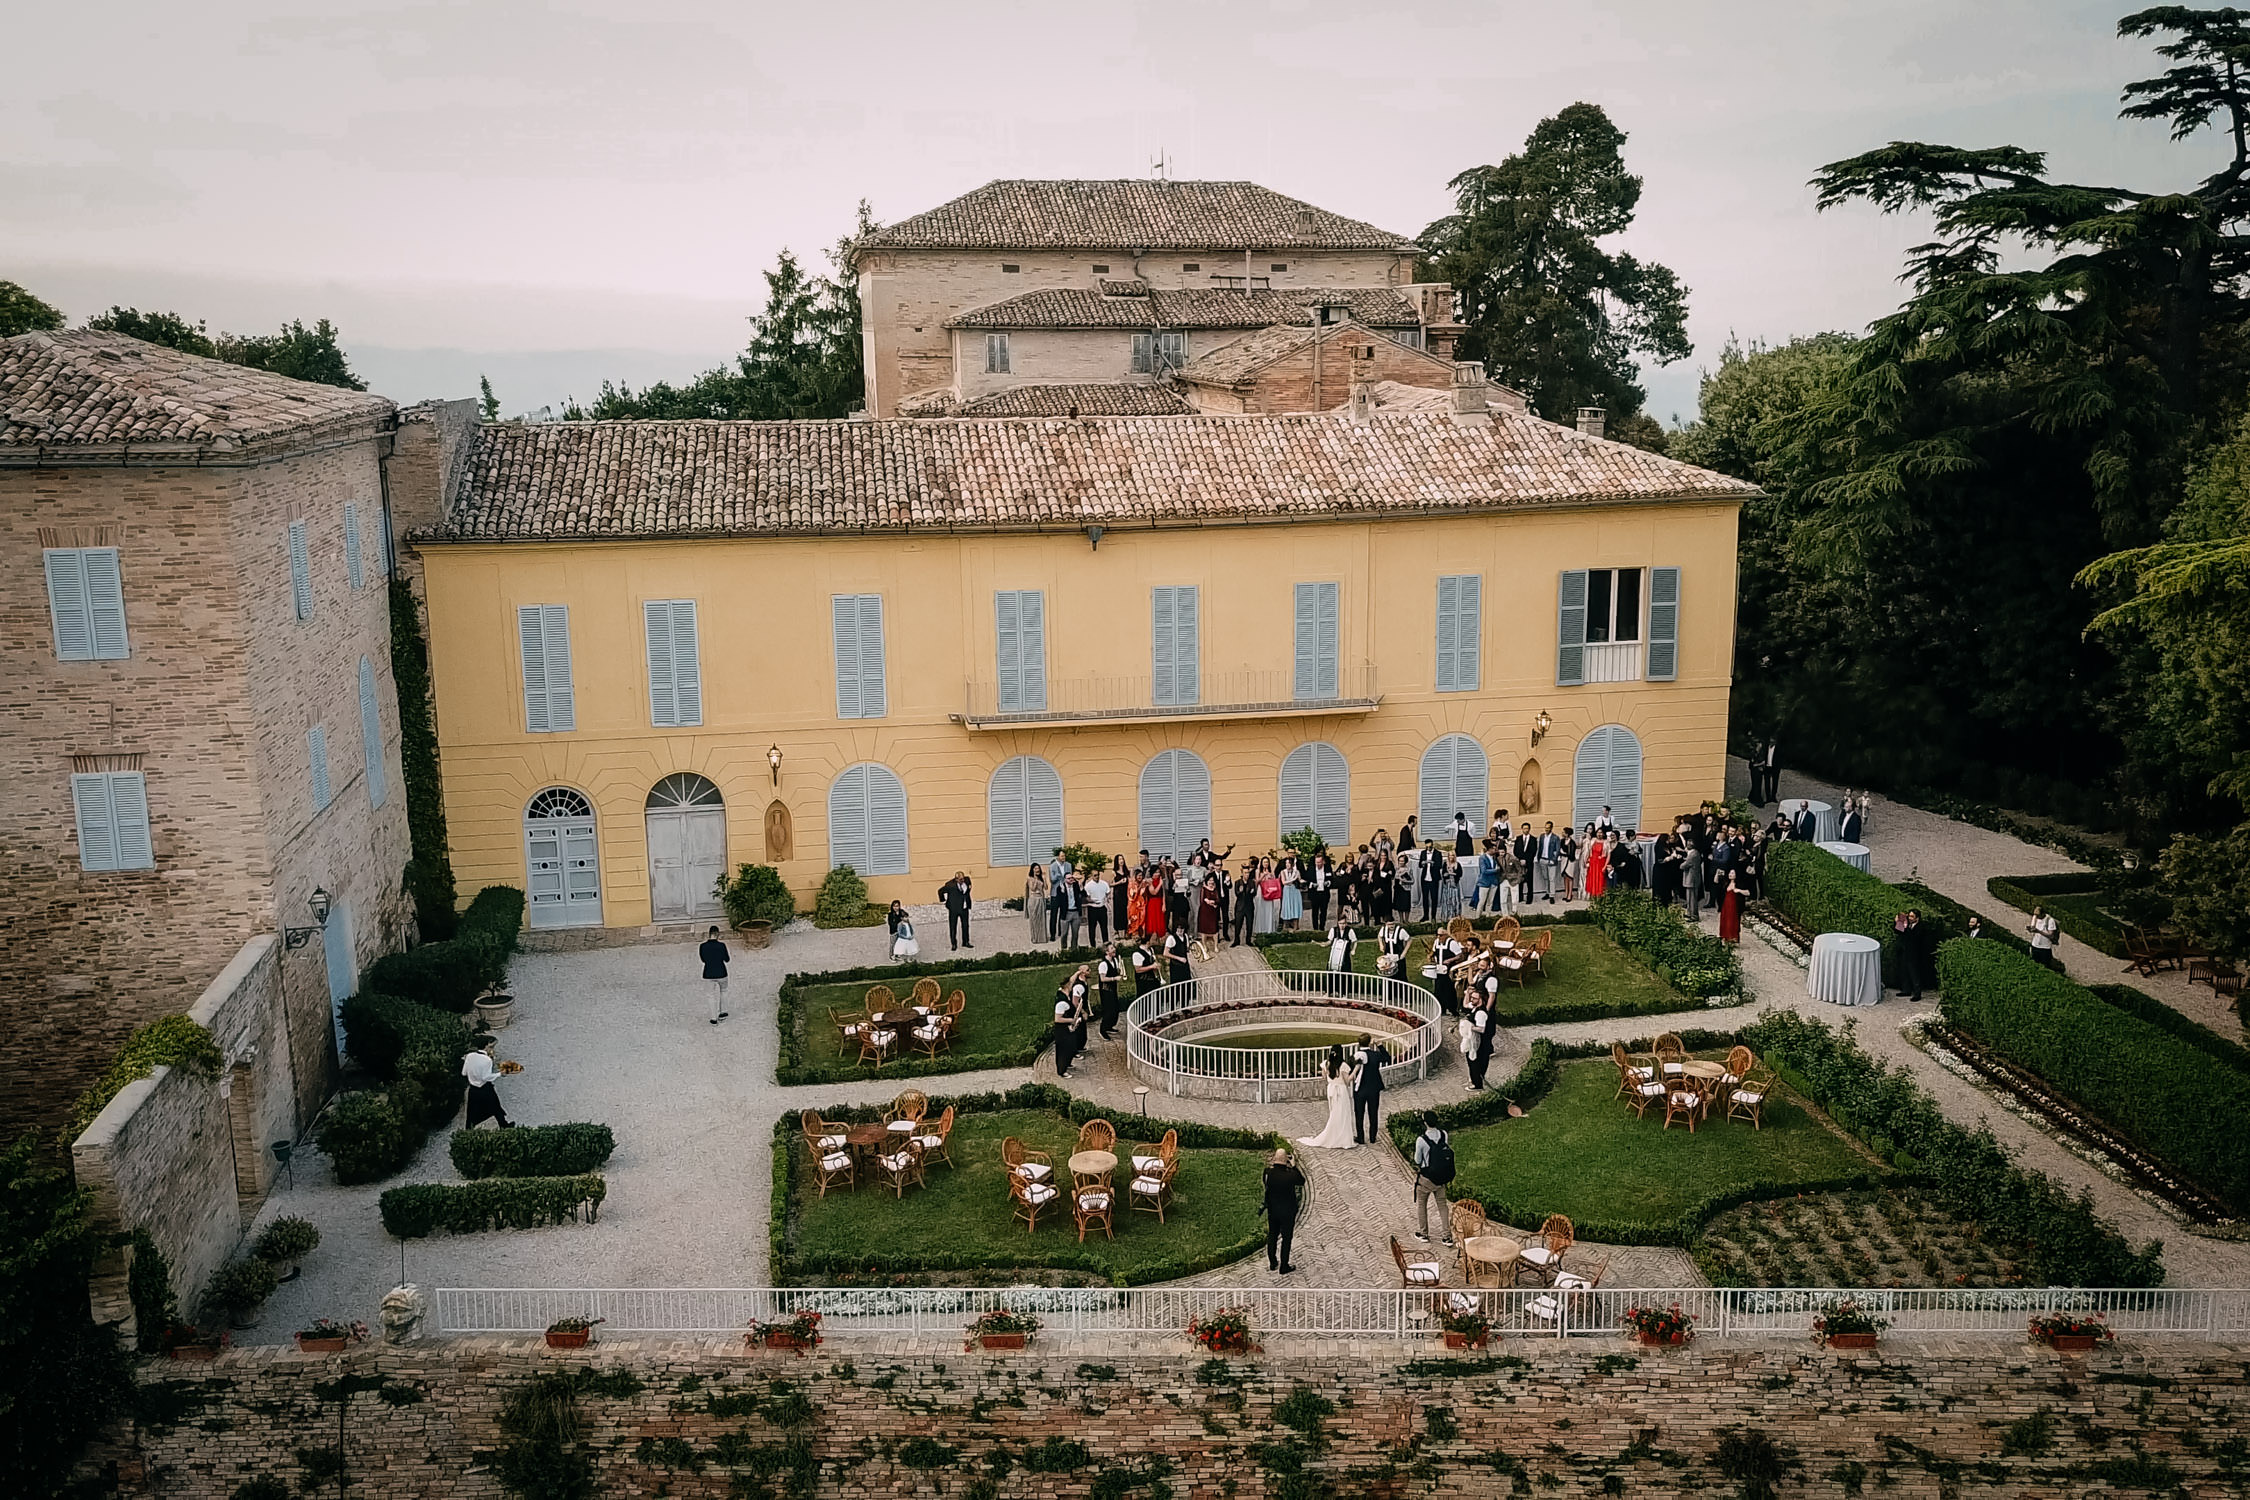 krup studio destination wedding photography & videography in italy